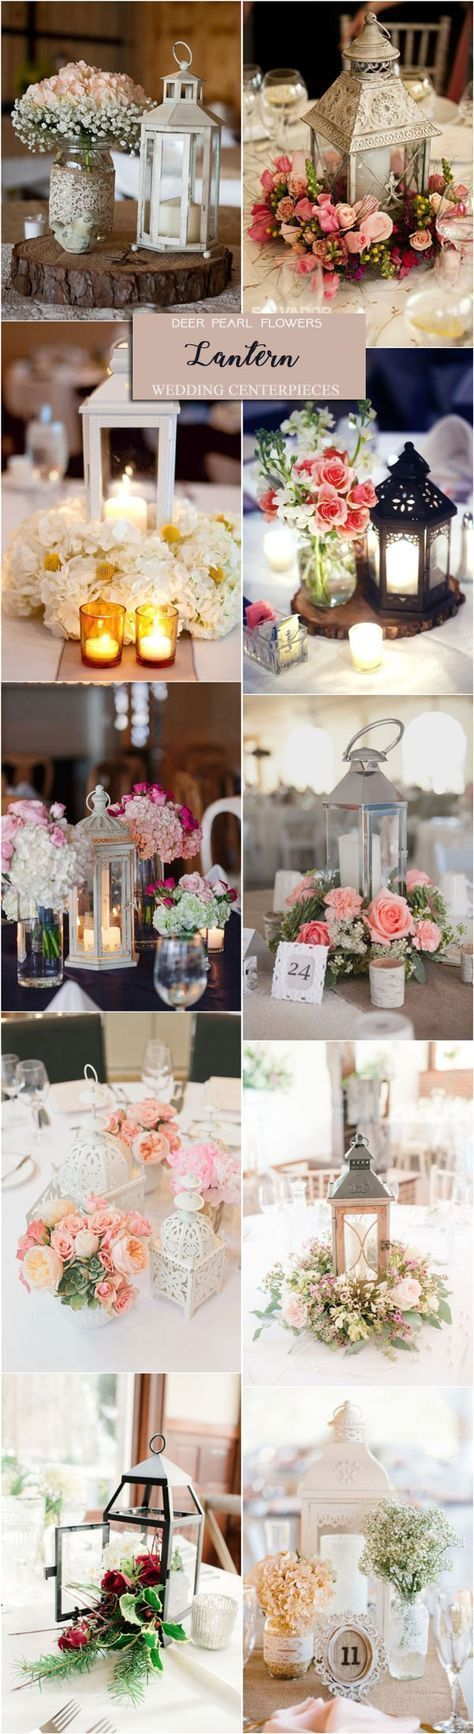 Rustic vintage lantern wedding centerpiece decor ideas / http://www.deerpearlflowers.com/wedding-centerpiece-ideas/2/ #weddingideas